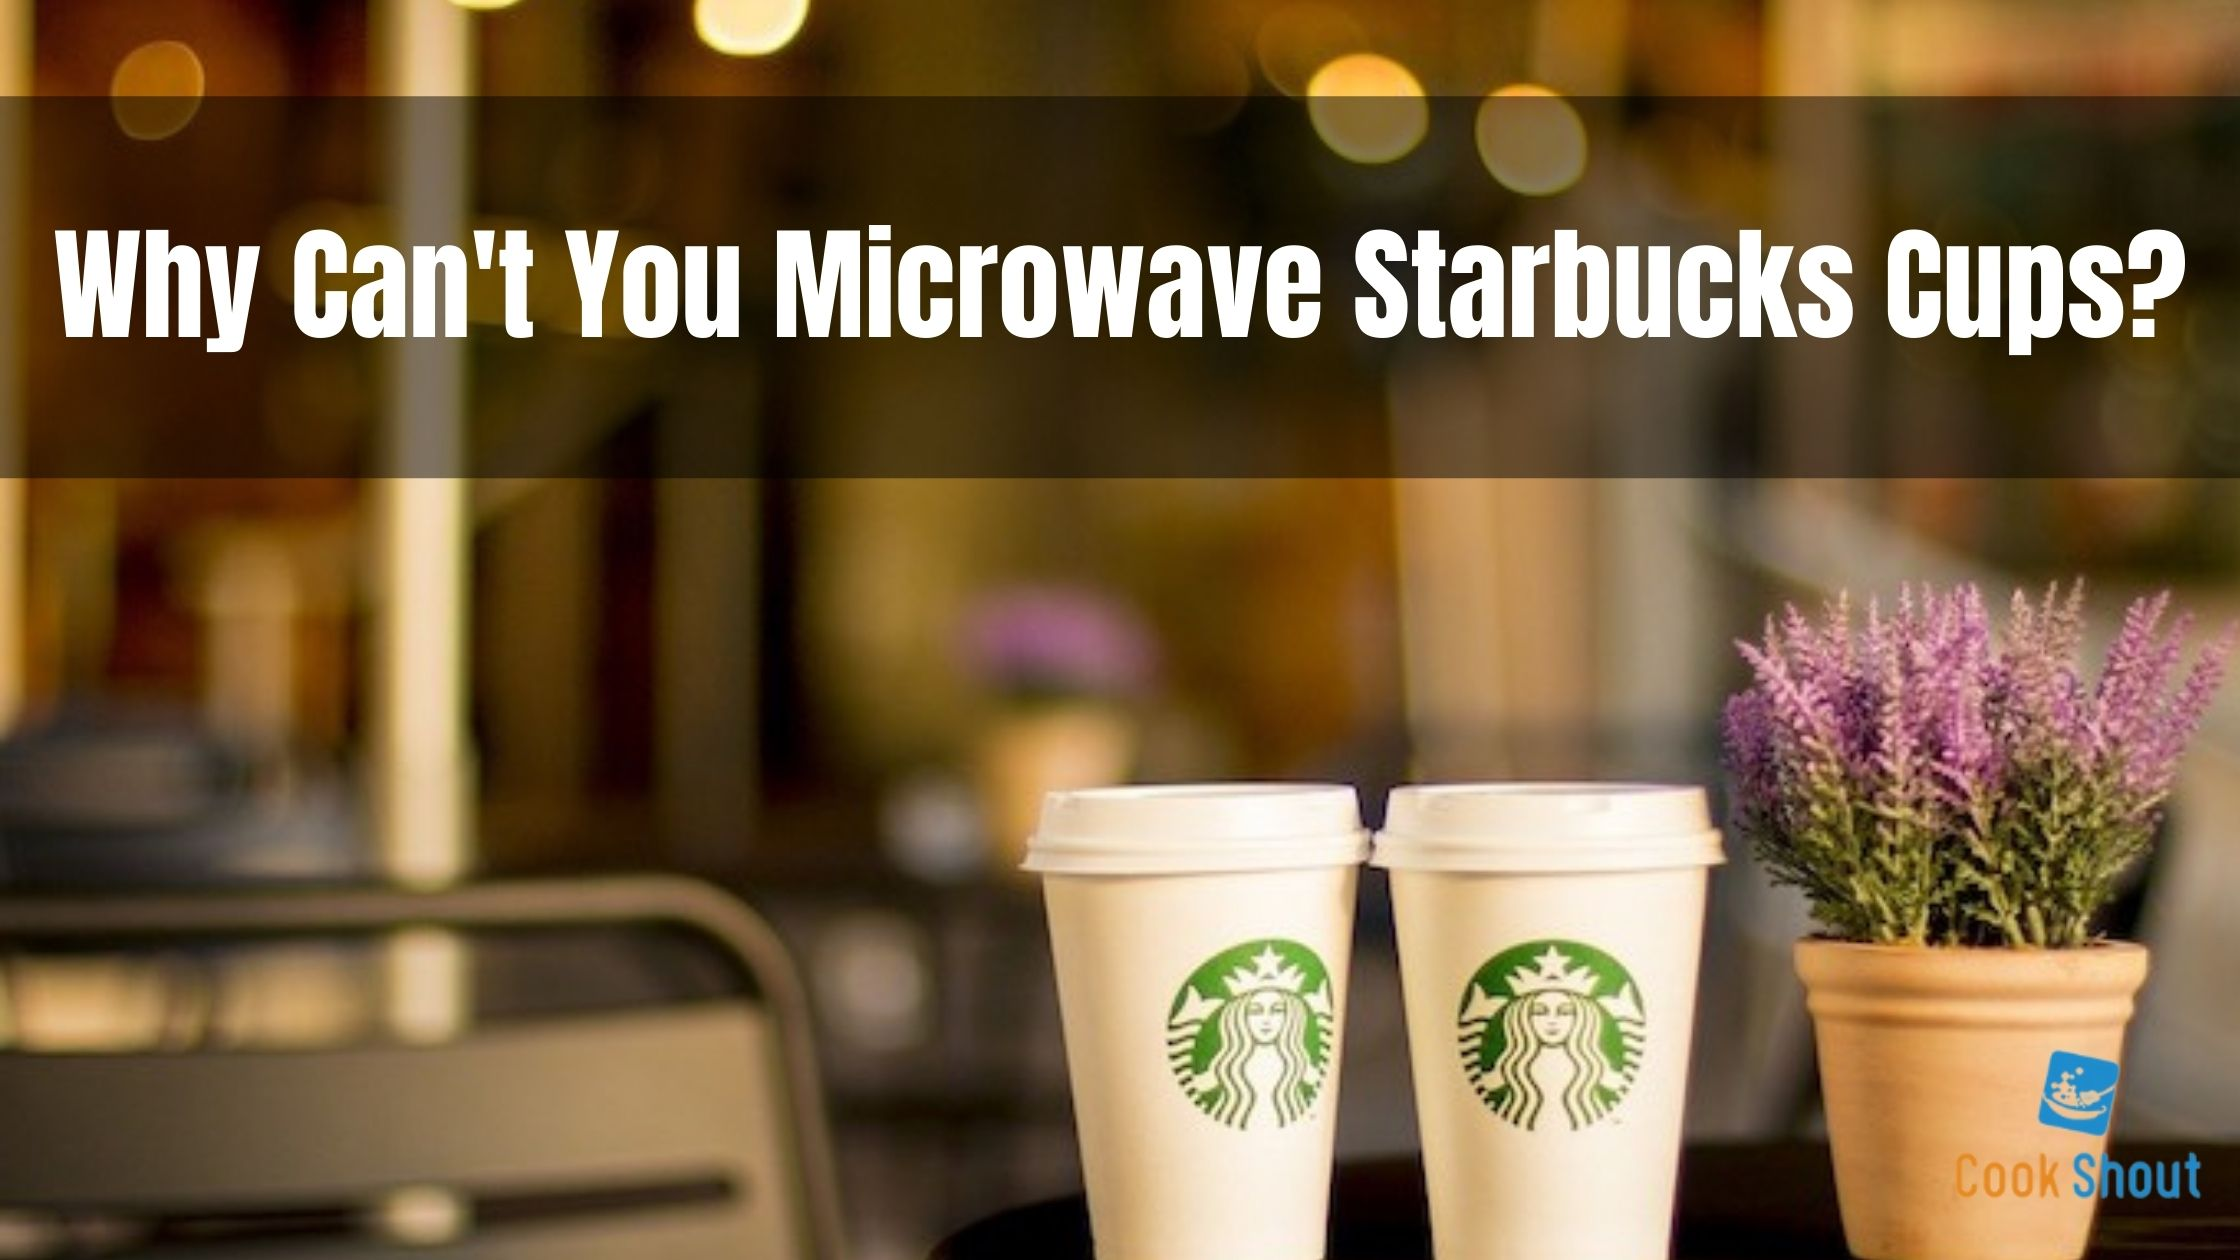 Why Can't You Microwave Starbucks Cups